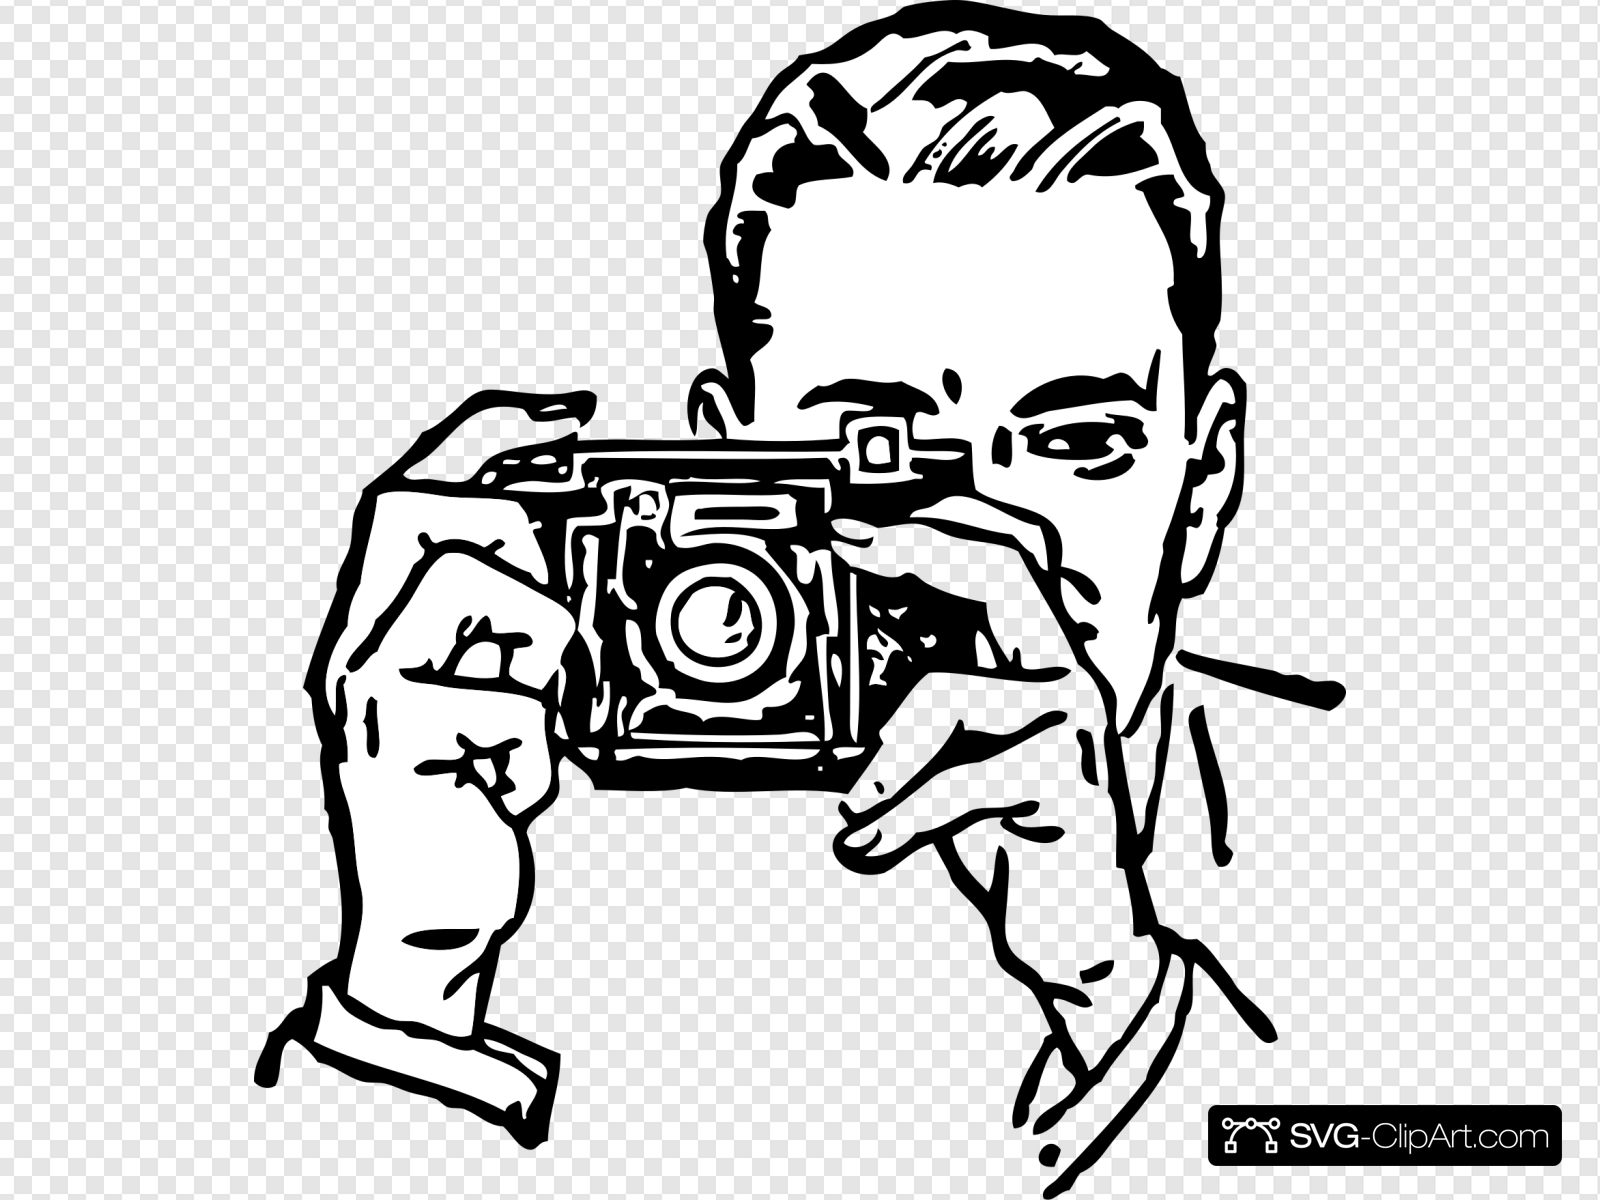 Man with camera clipart clipart black and white Man With A Camera Clip art, Icon and SVG - SVG Clipart clipart black and white